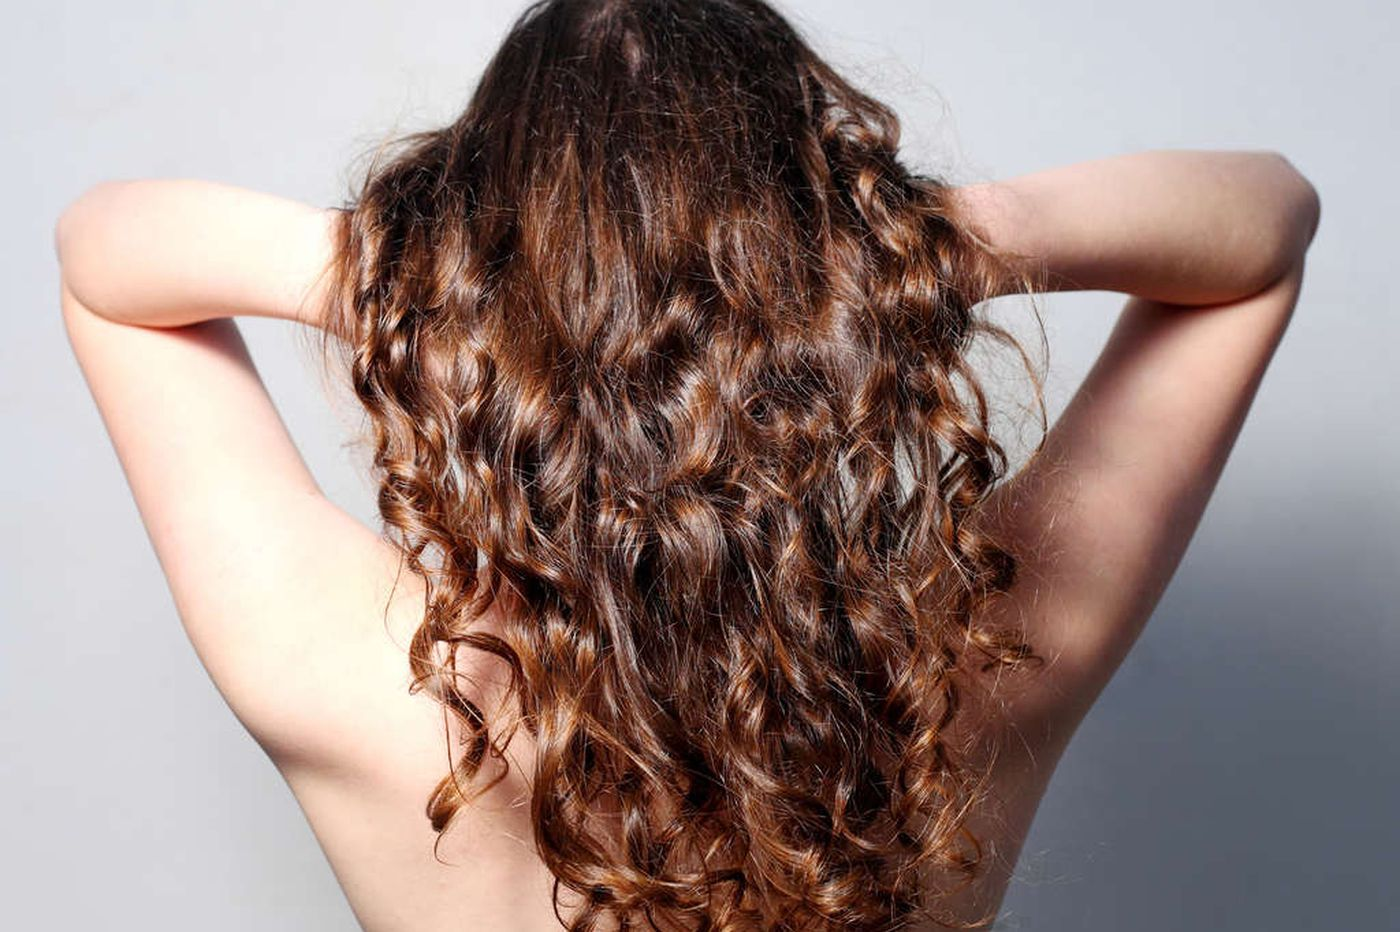 Taking curly locks in hand